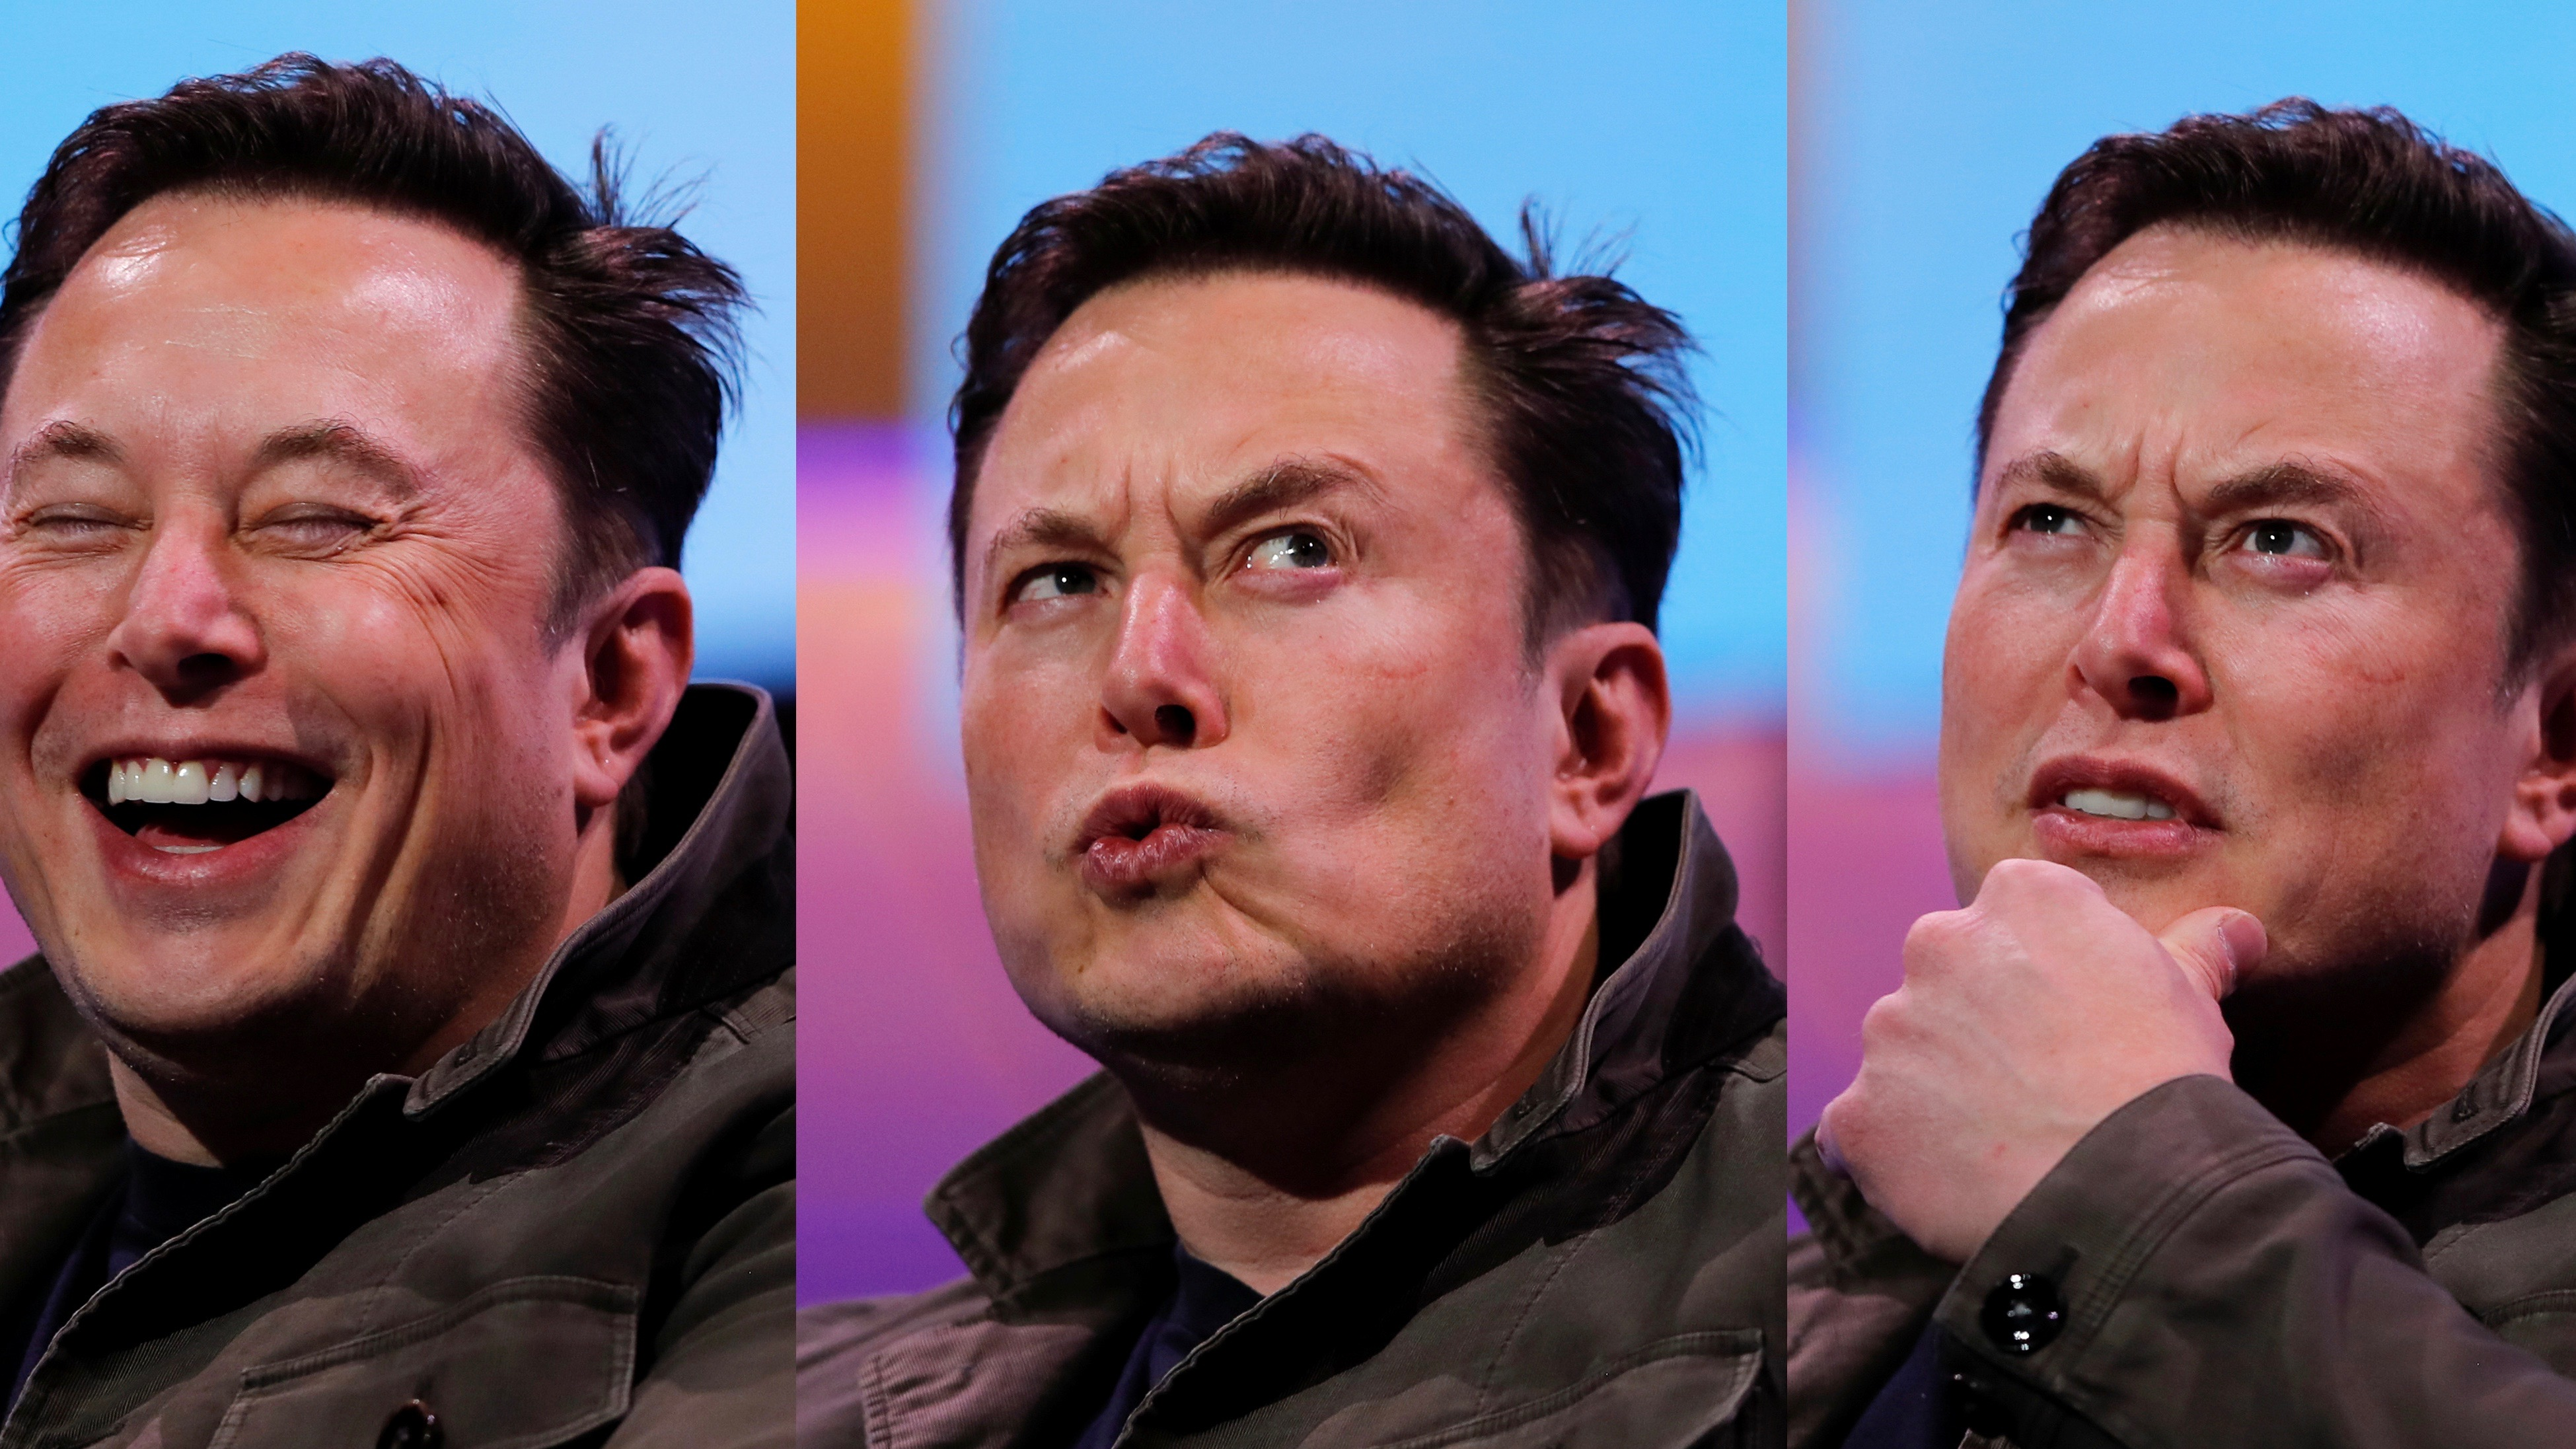 Three facial expressions of Elon Musk, shown in a photographic montage. One smiling, one thinking, one perplexed.